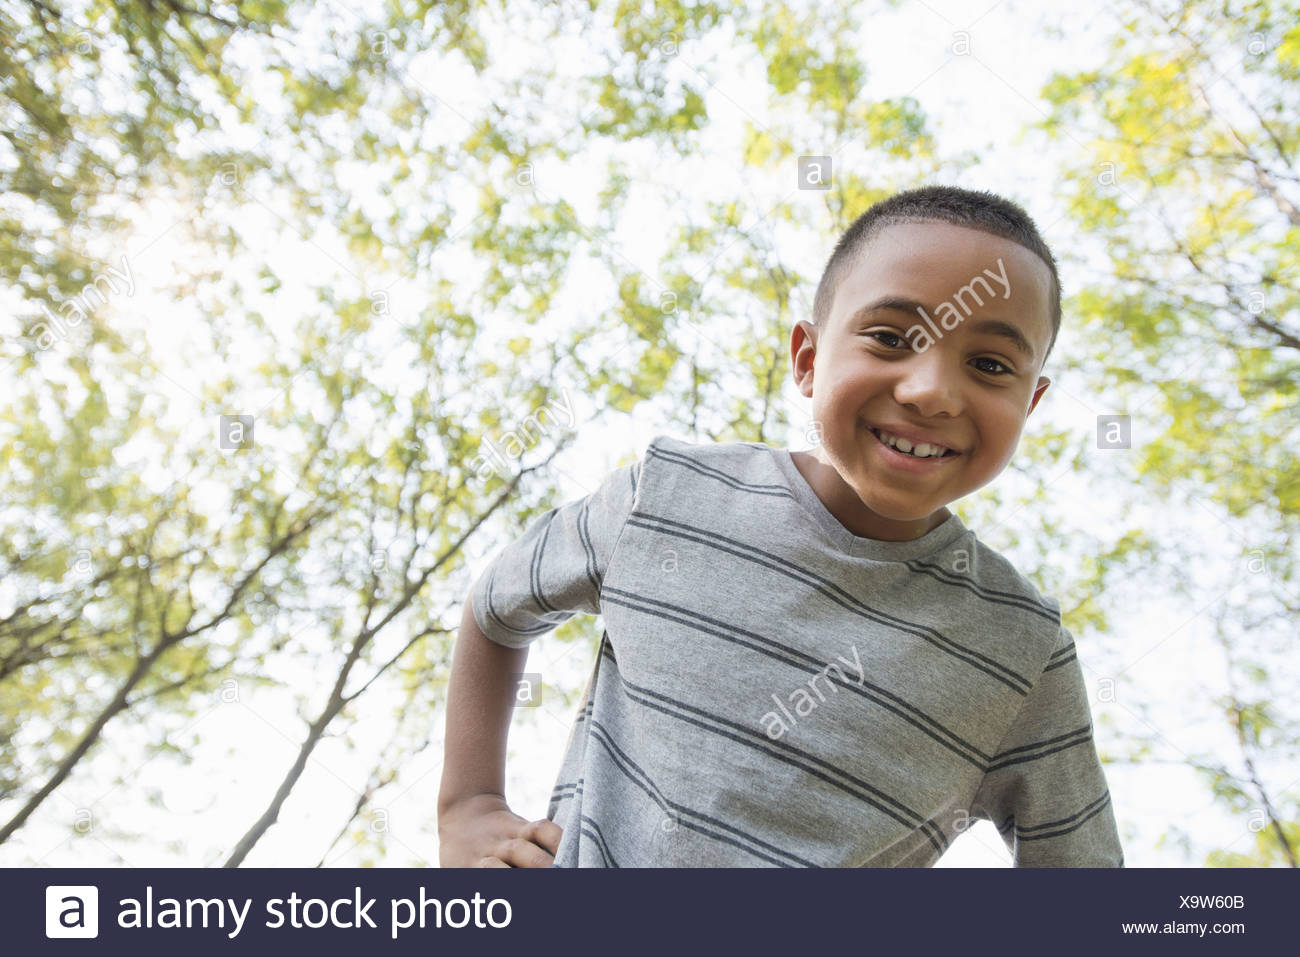 A boy with his hands on his hips looking into  camera. - Stock Image